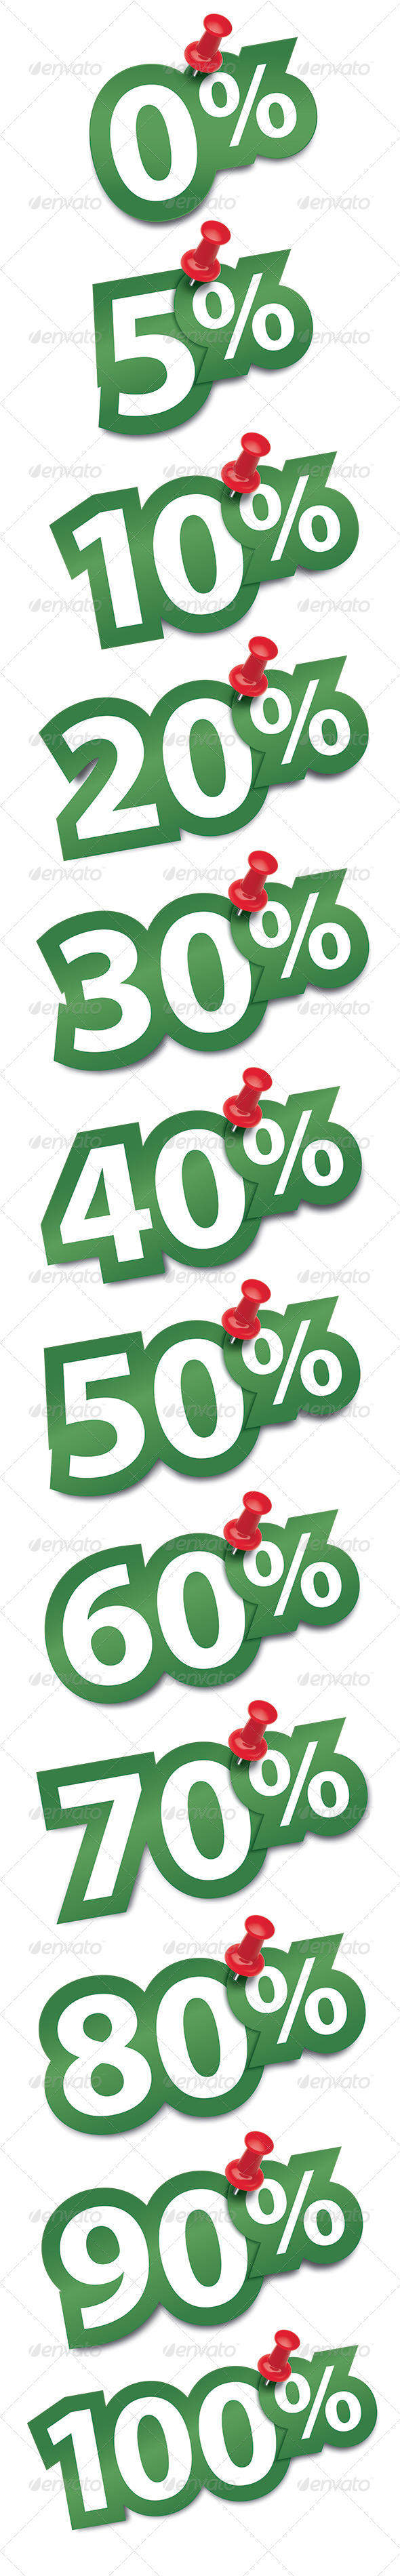 GraphicRiver Percent Sticker Fixed by a Thumbtack 6671586